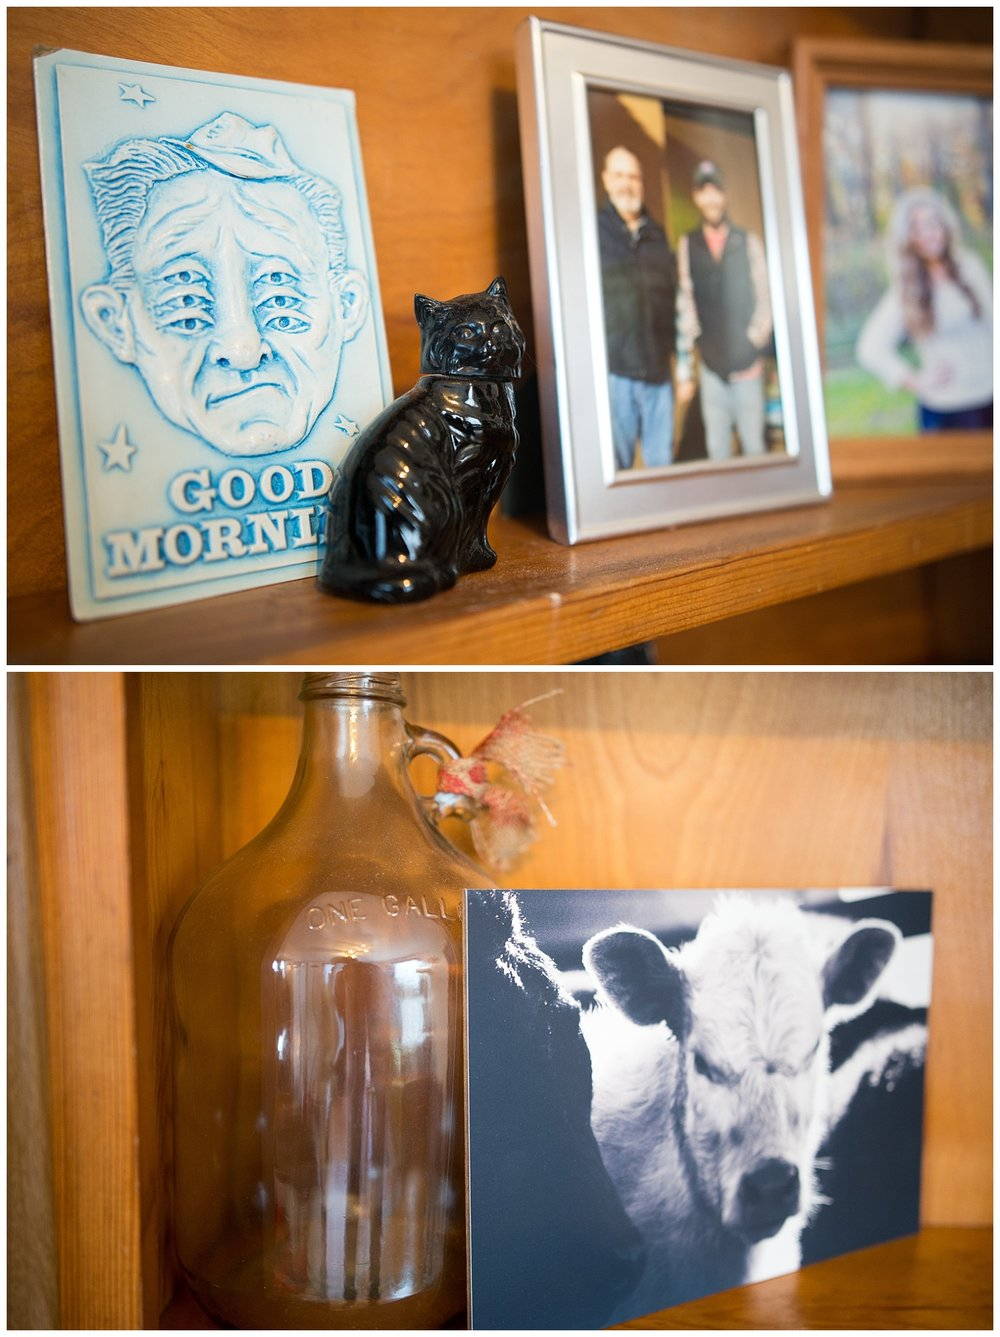 The Good Morning card Aaron found while on vacation and it's one of his favorite finds. The calf picture was gotten at the Pioneer Woman's shop during Bri and her sister's trip to Oklahoma to meet her.